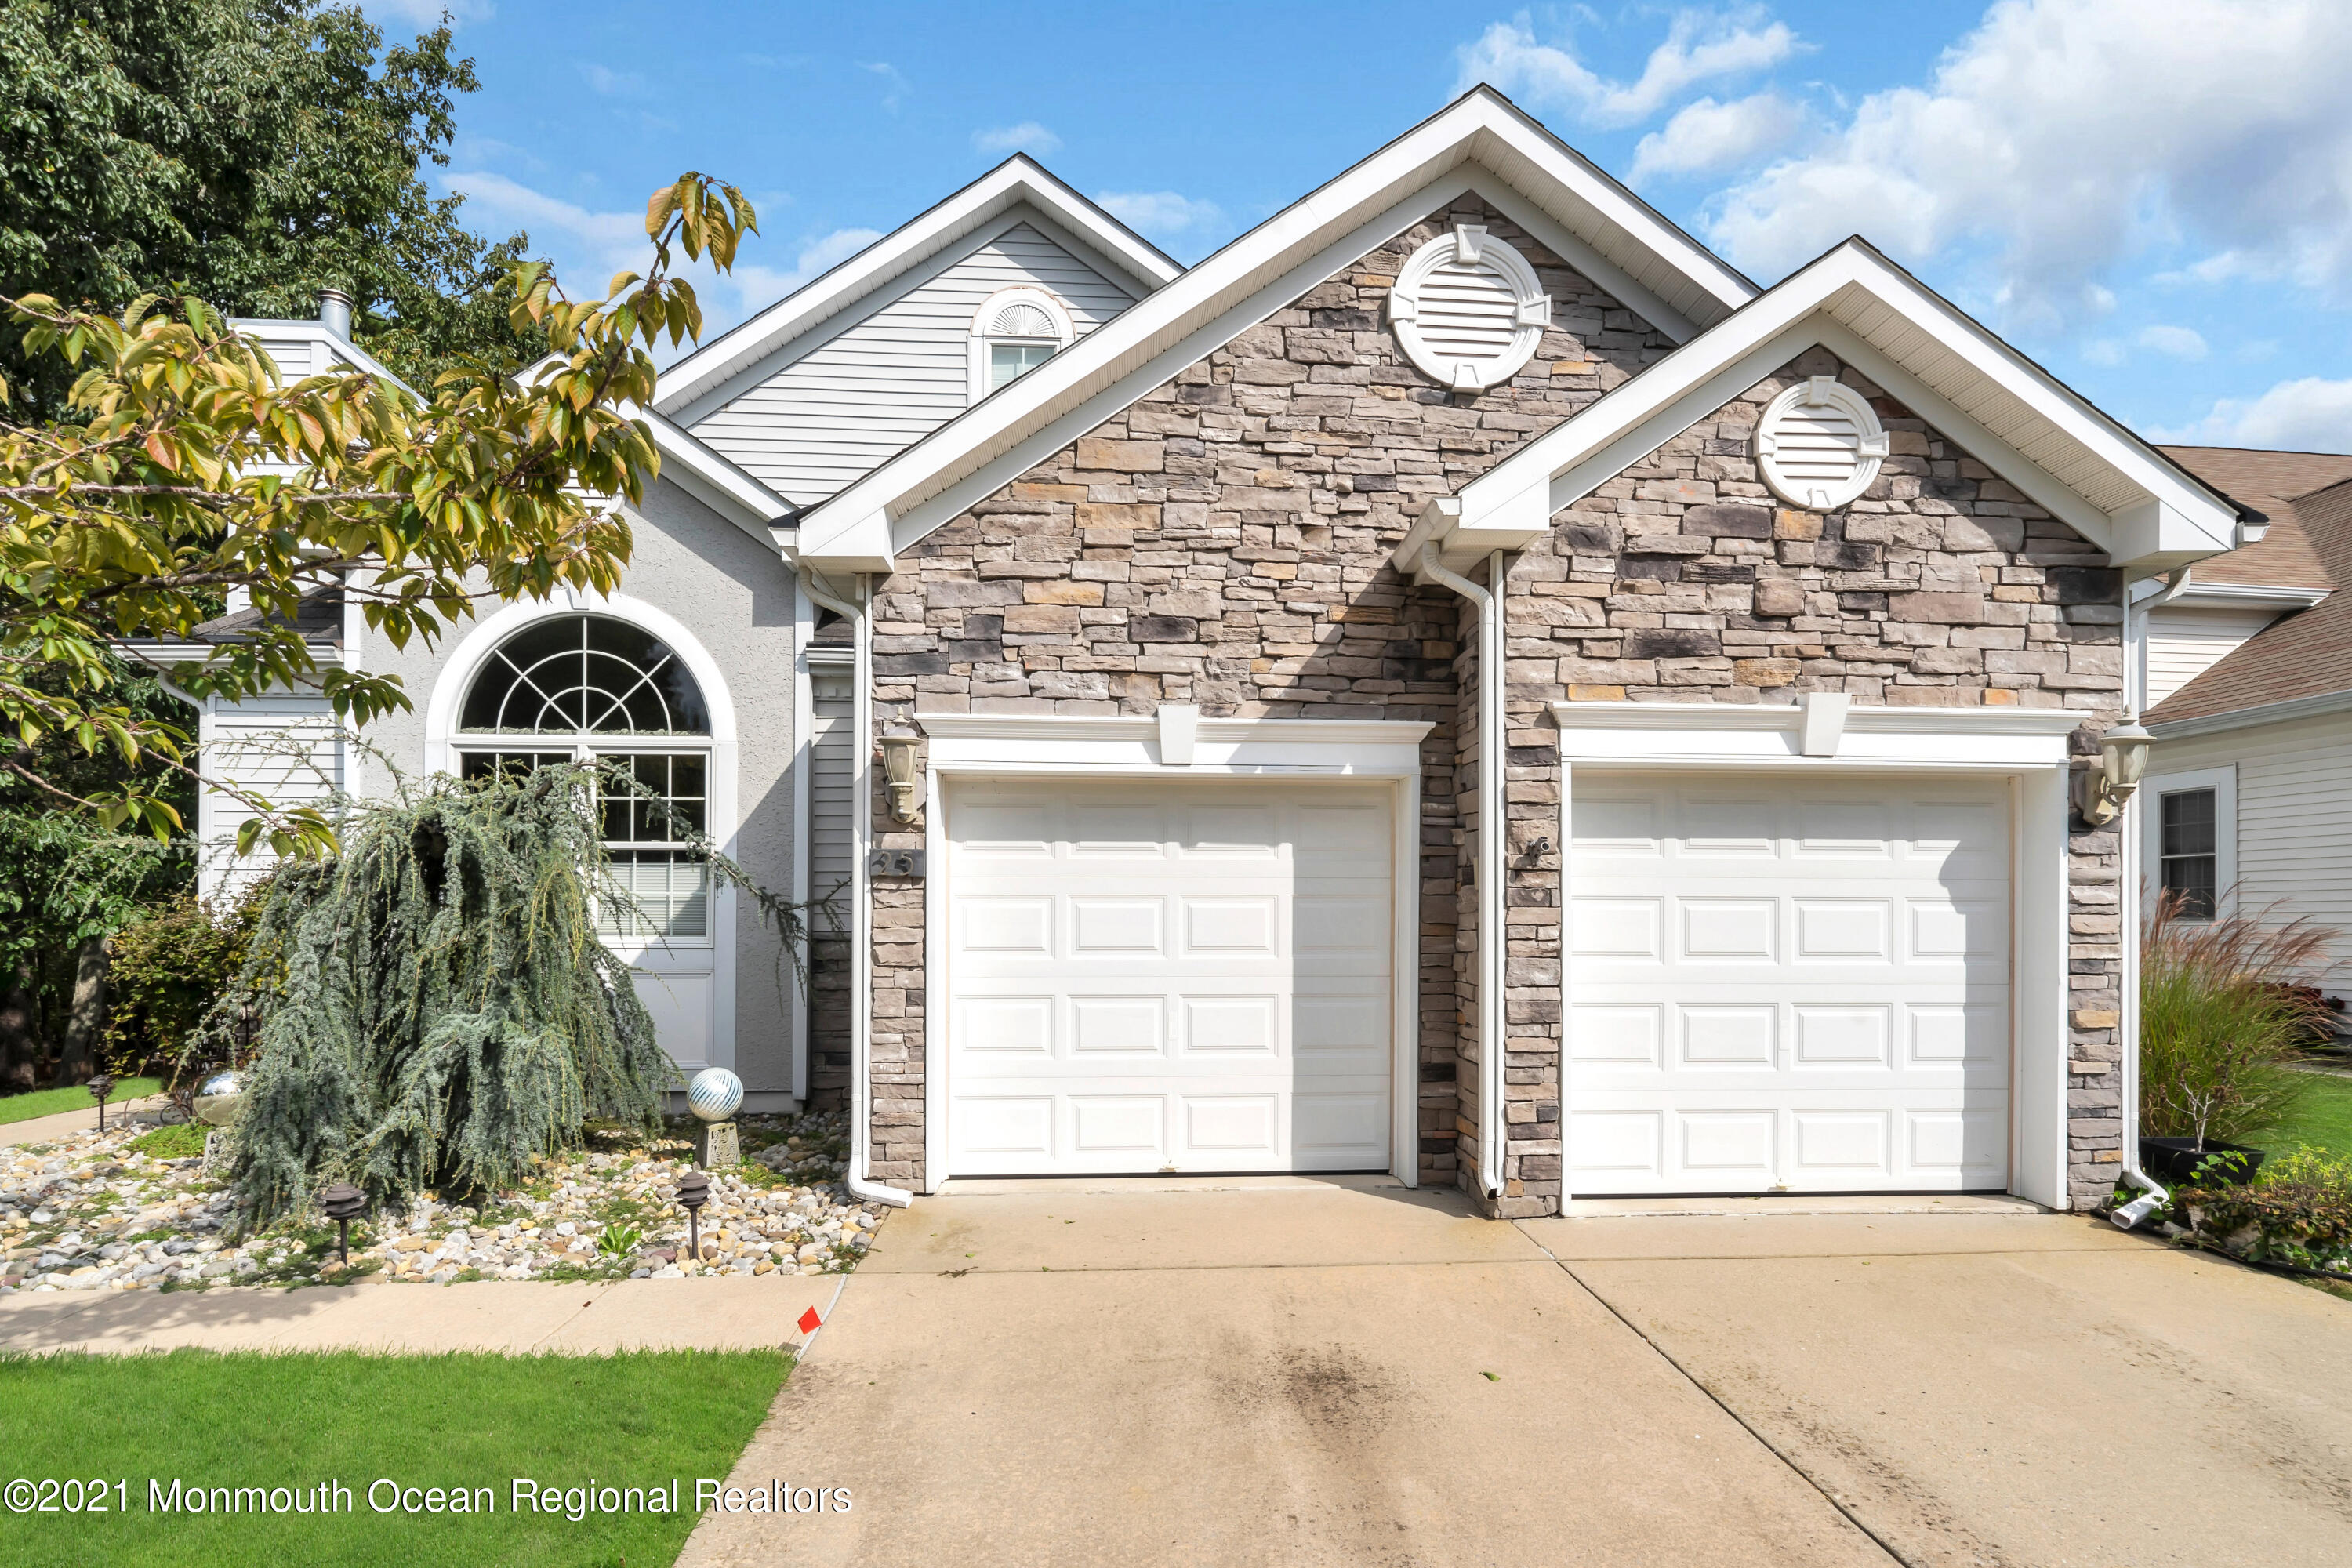 Beautiful Chesapeake Model w/Loft & Full Walk-Out Basement. Backs Up To Woods Very Private. Gourmet Kitchen w/Custom Wood Cabinets, Granite C/Tops, S/S Appl. Tile Floors, Center Island & Breakfast Counter & Dinette. Living Rm w/Gas Fireplace & Tile Flrs. Dining Rm, Entry Foyer, Hall, Family Rm w/Custom Entertainment Unit and Wood Floors. Sunroom w/Tile Flrs. Master Bedroom w/Wood Flrs. Full Bath & Walk-in Closet. Master Bath w/Double Sink Vanity, Soaking Tub & Stall Shower. Second Flr. Loft w/Two Bedrm + Bonus Rm. Used as 4th Bedrm. & Full Bath. Decorative Moldings. Window Blinds, Ceiling Fans. Custom Deck w/Awning. 2 Car Garage w/Walk-Up Storage, Located in Greenbriar Oceanaire Golf & Country Club w/18 Hole Golf Course,Clubhouse,In & Outdoor Pools,Restaurant & Pub. Your Buying a Lifestyle